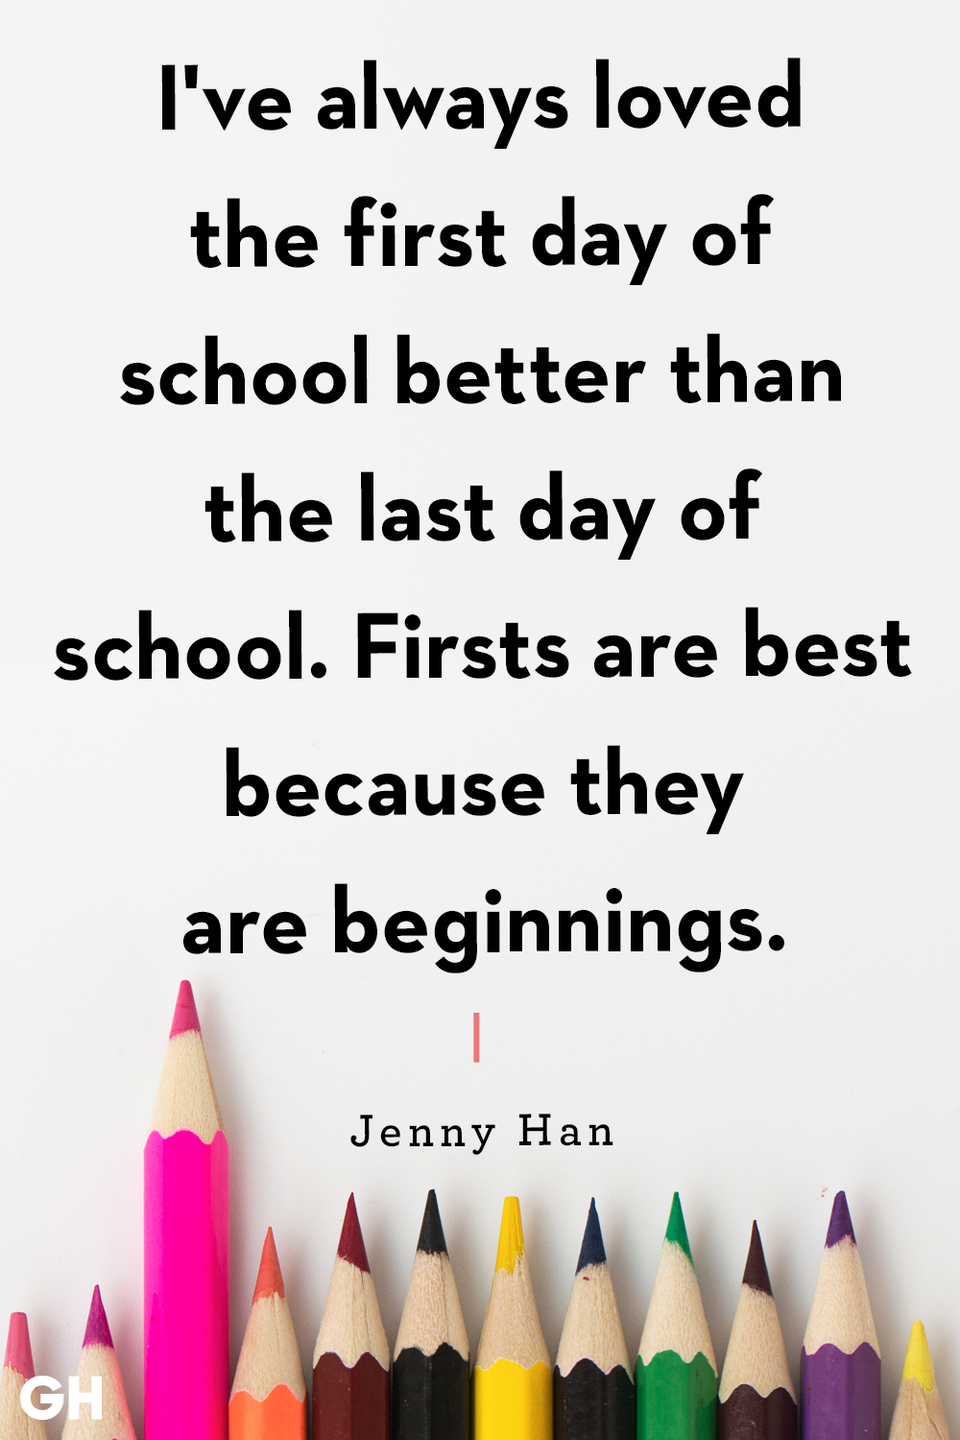 <p>I've always loved the first day of school better than the last day of school. Firsts are best because they are beginnings.</p>